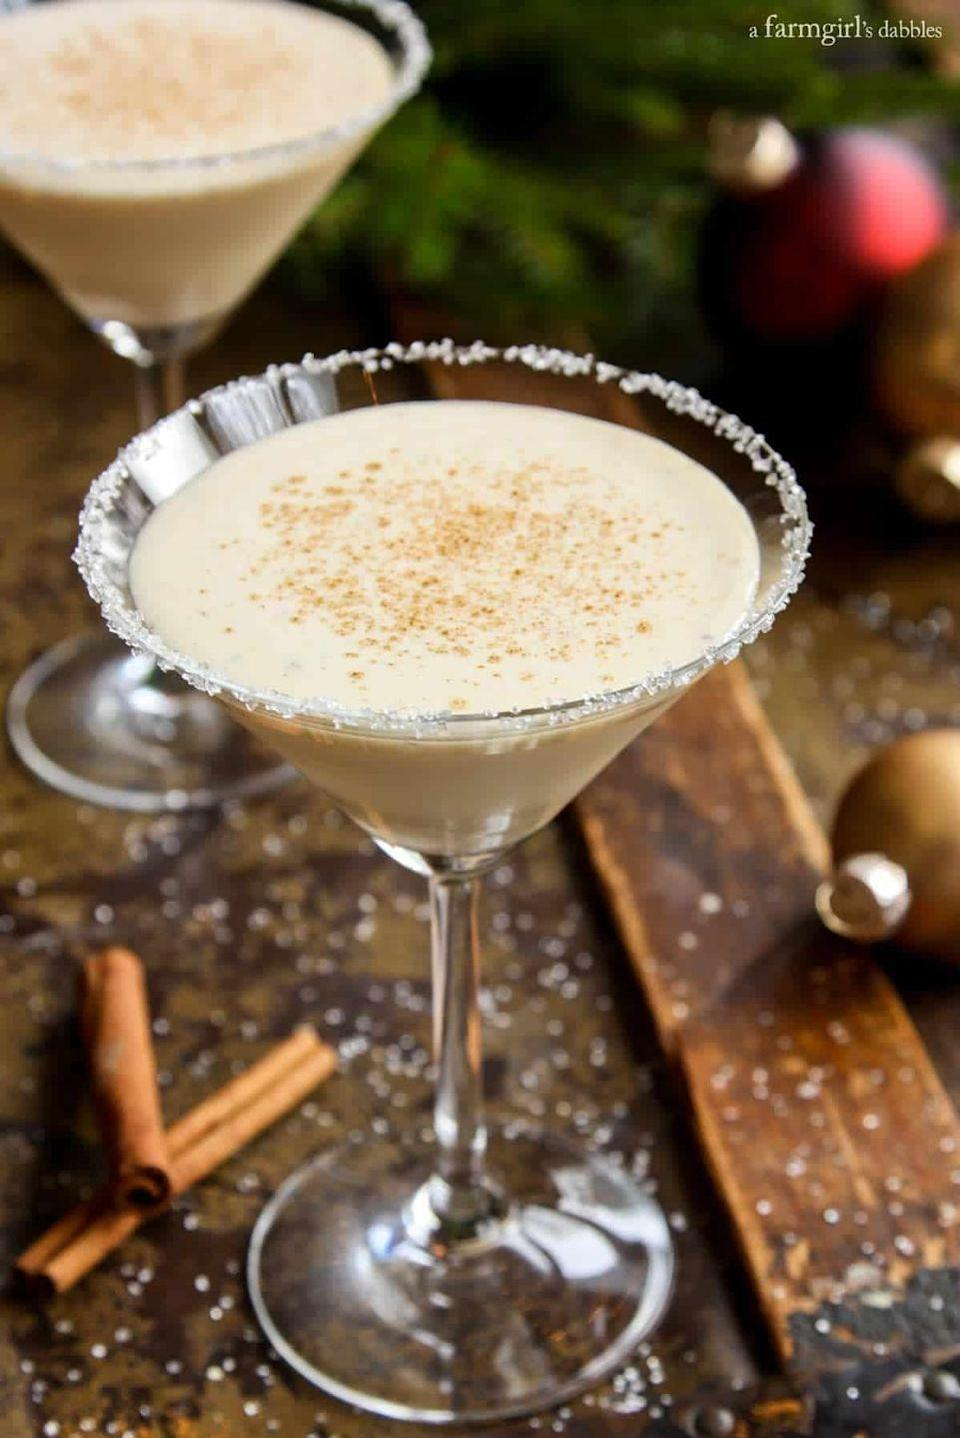 "<p>If you love the flavor of eggnog, but find a whole glass of it a little overwhelming, this cleaner, spicy chilled cocktail is just the thing.</p><p><strong>Get the recipe at <a href=""https://www.afarmgirlsdabbles.com/angelas-eggnog-cocktail-recipe/"" rel=""nofollow noopener"" target=""_blank"" data-ylk=""slk:A Farmgirl's Dabbles"" class=""link rapid-noclick-resp"">A Farmgirl's Dabbles</a>.</strong></p>"